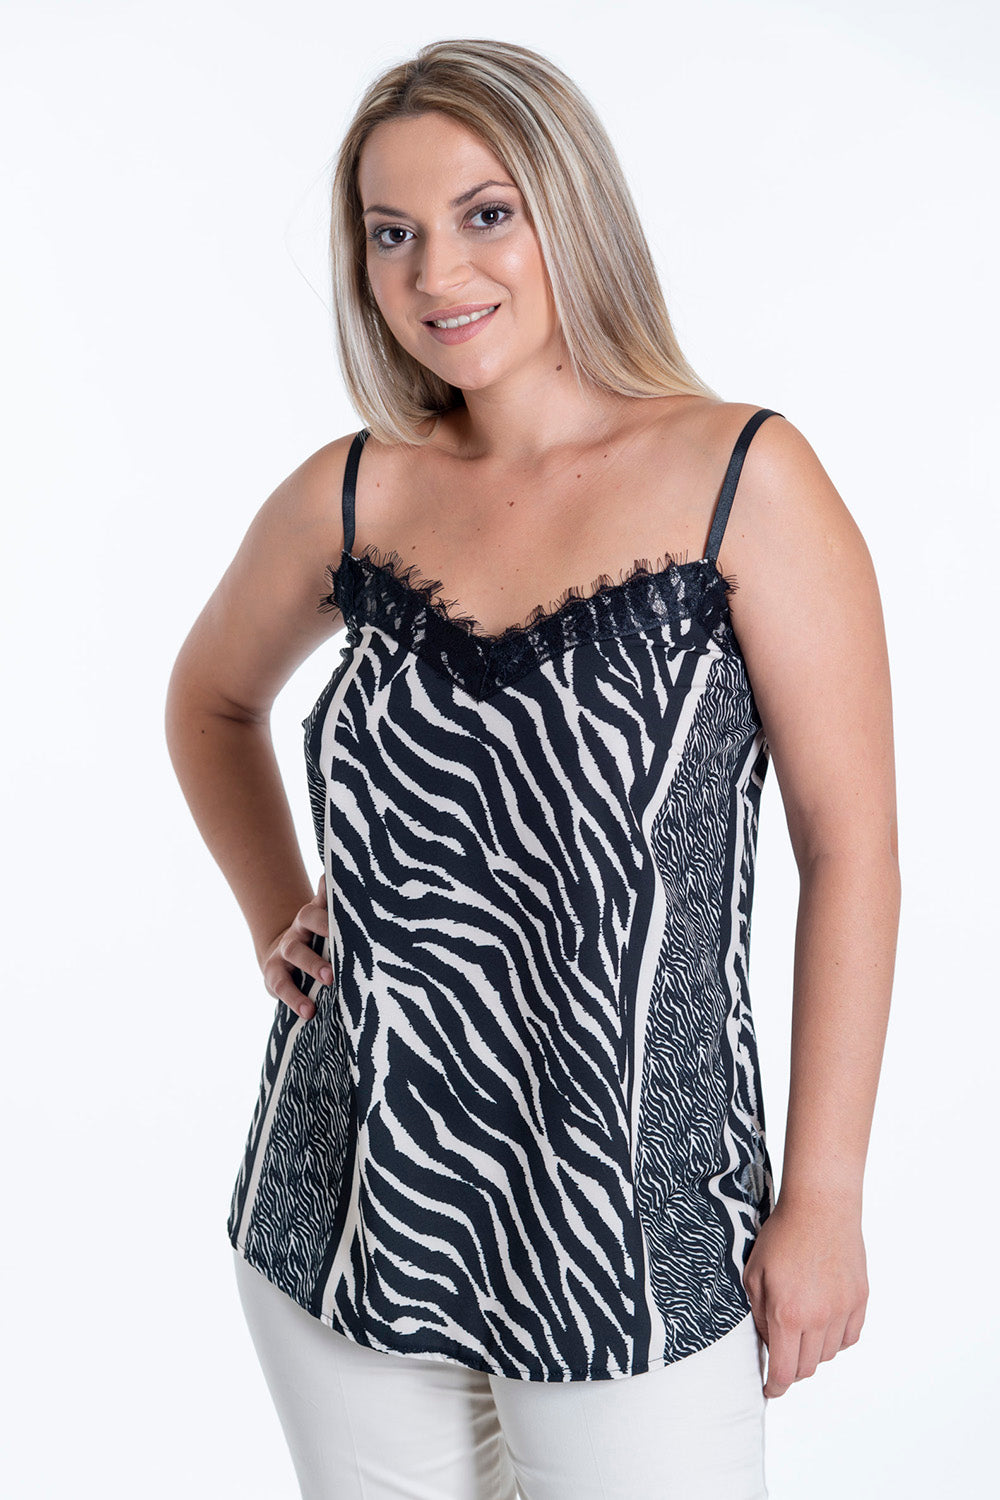 Akè zebra contrast top with lace detail and cami straps